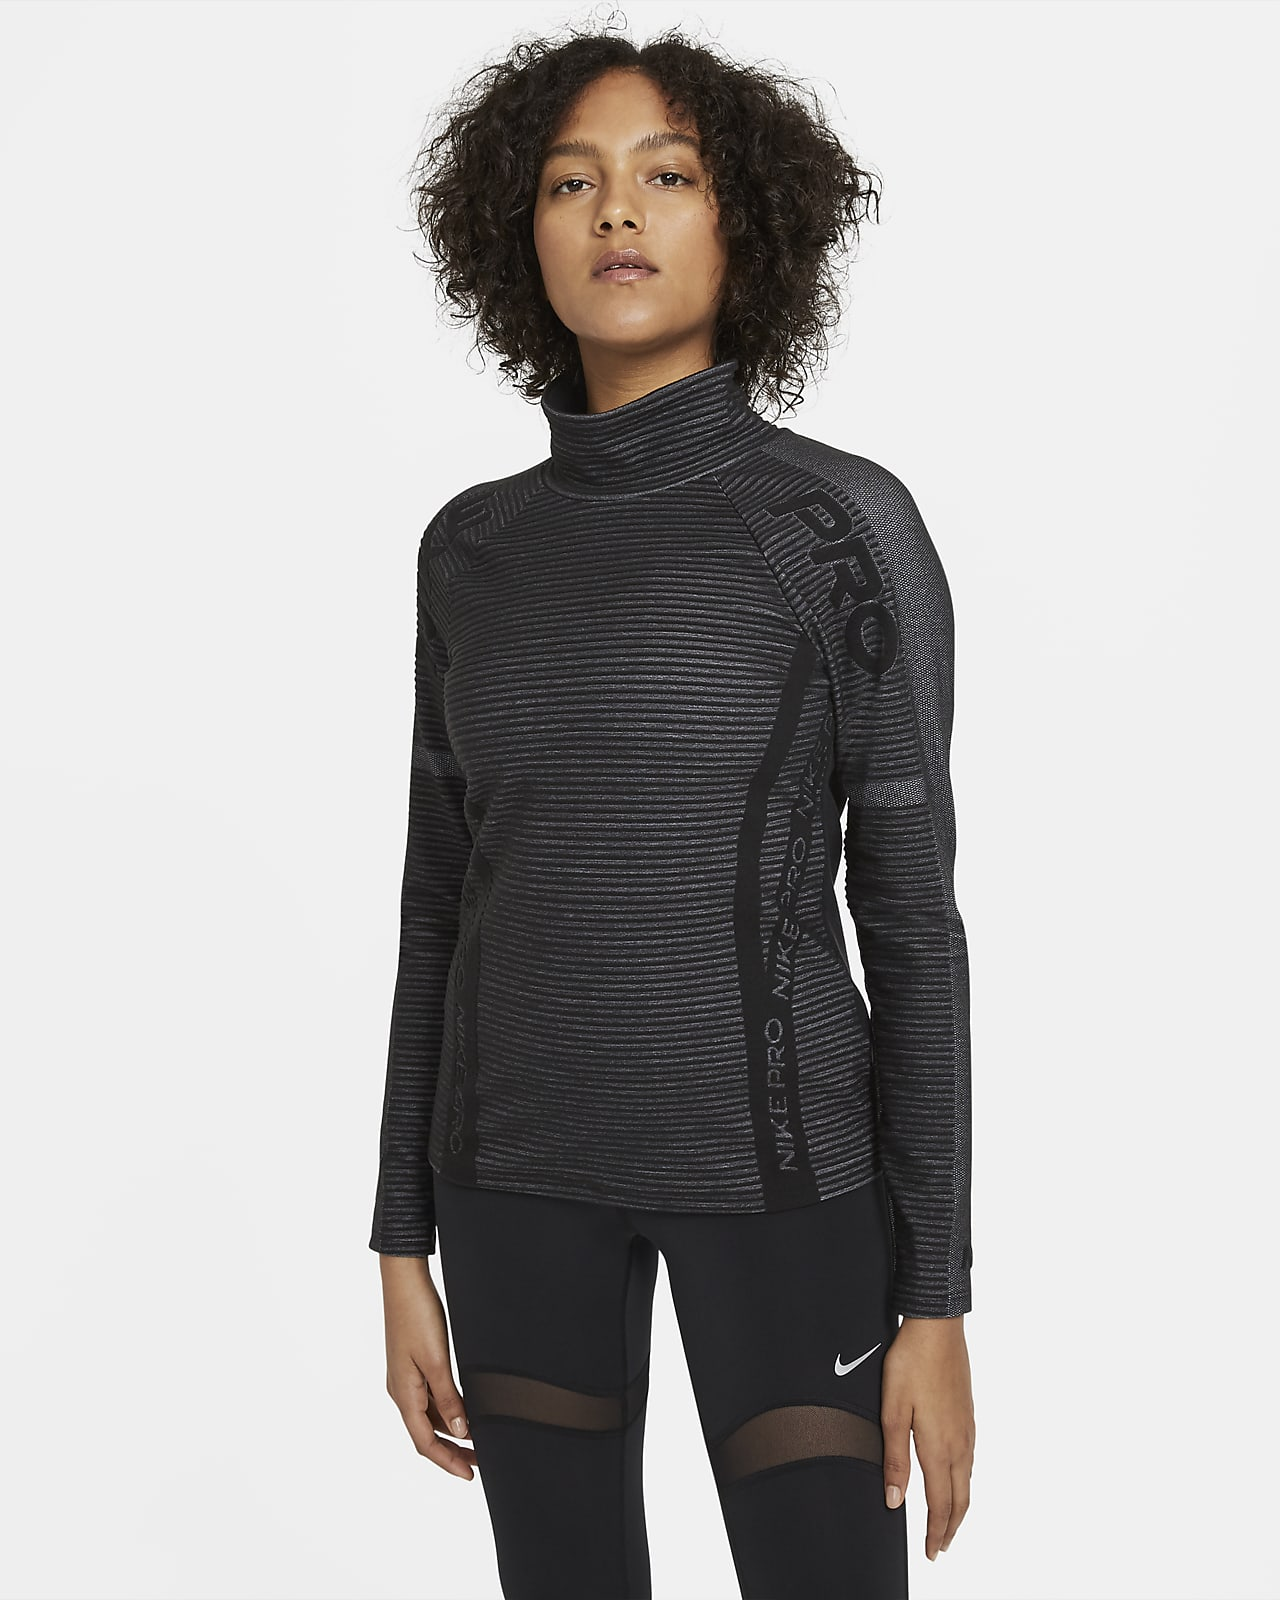 Nike Pro HyperWarm Women's Long-Sleeve Top